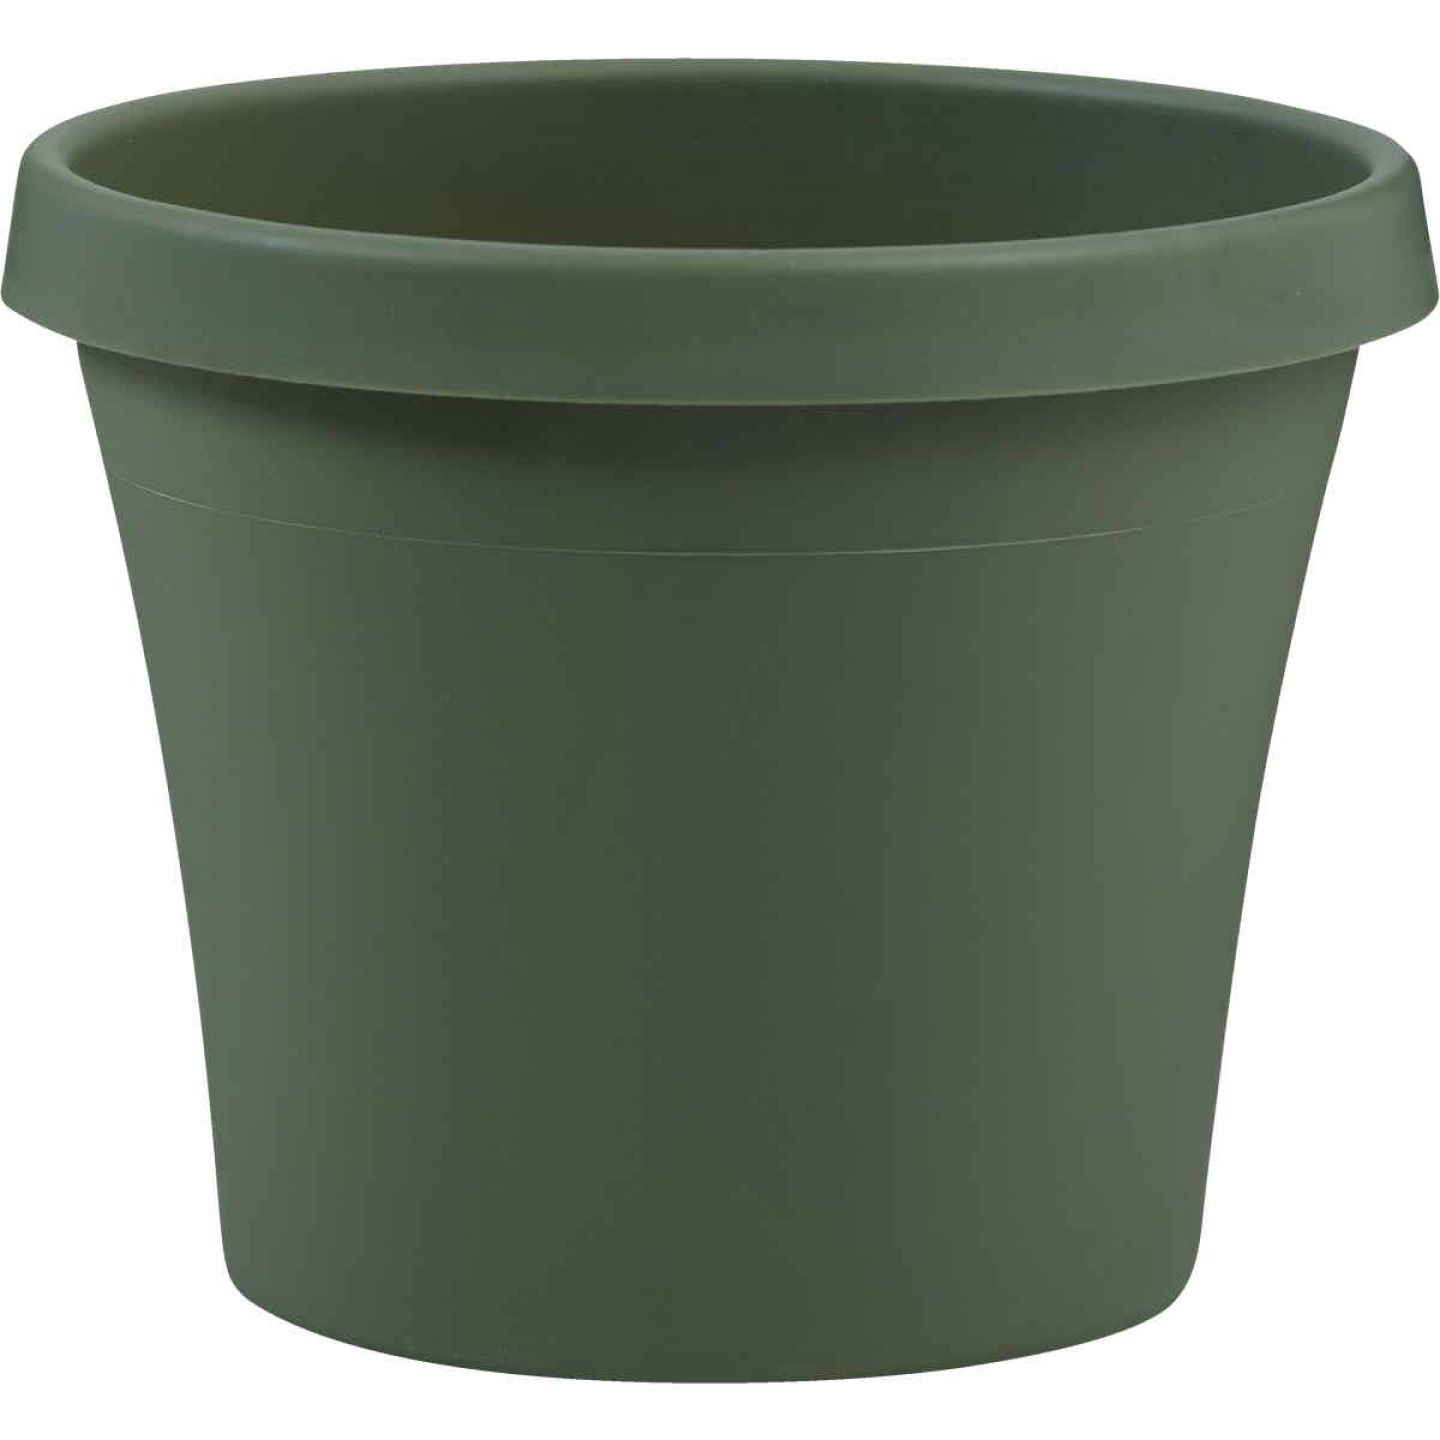 Bloem Terra Living Green 12.75 In. H. x 14 In. Dia. Polypropylene Planter Image 1